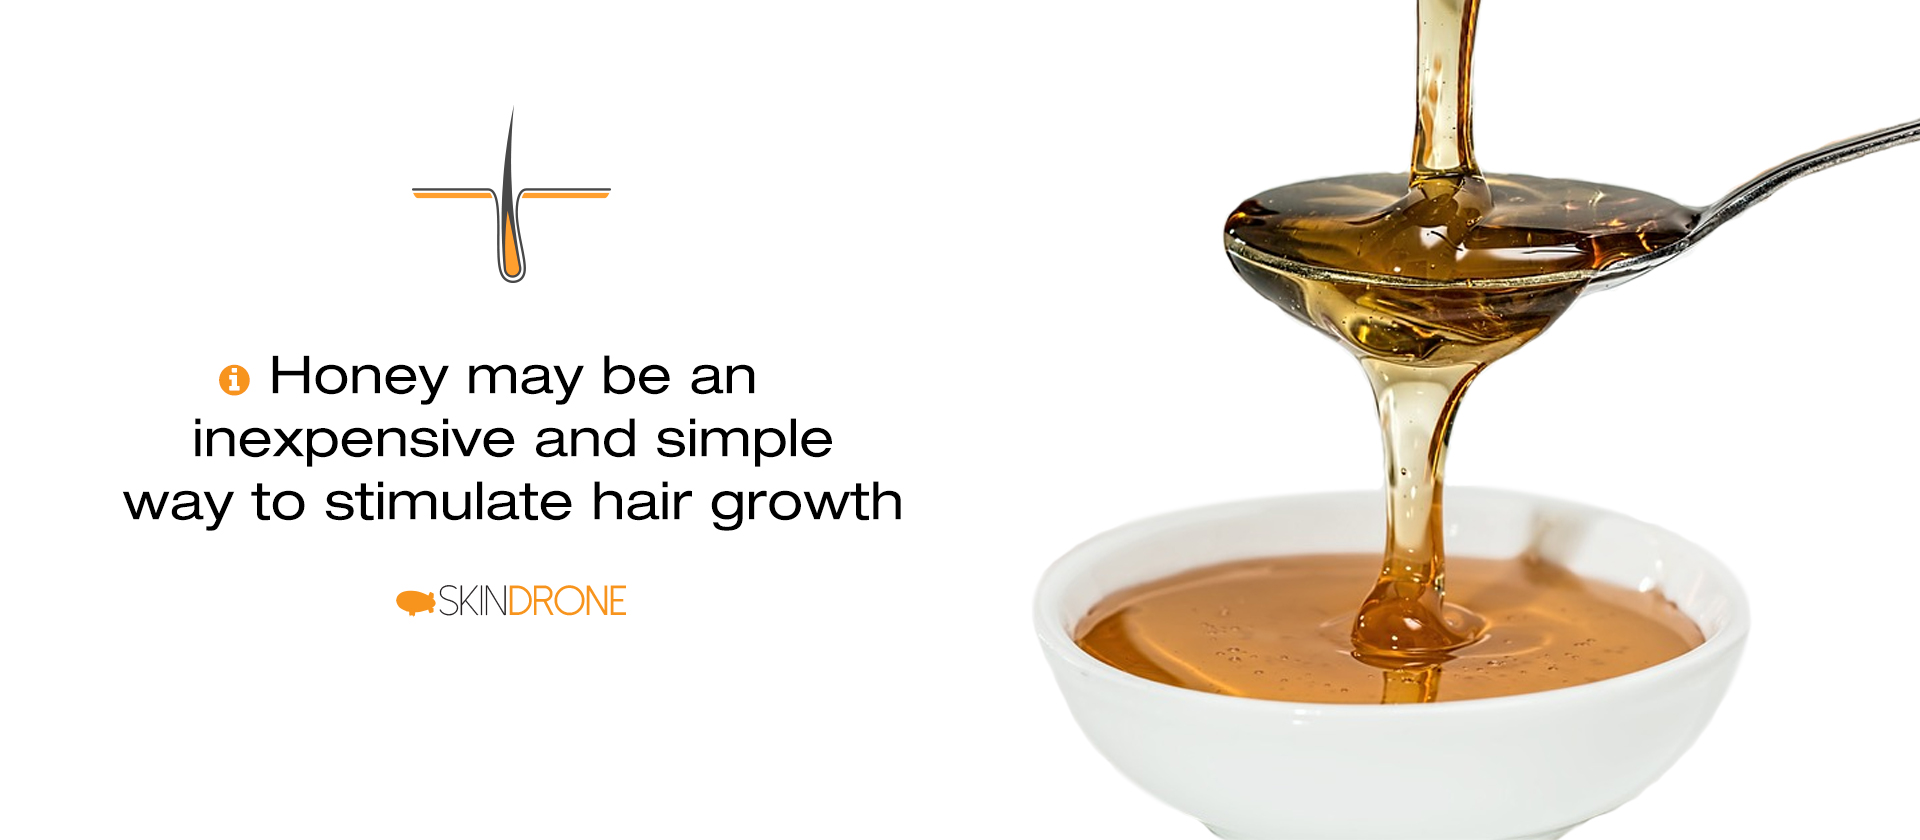 Honey may be an inexpensive and simple way to stimulate hair growth